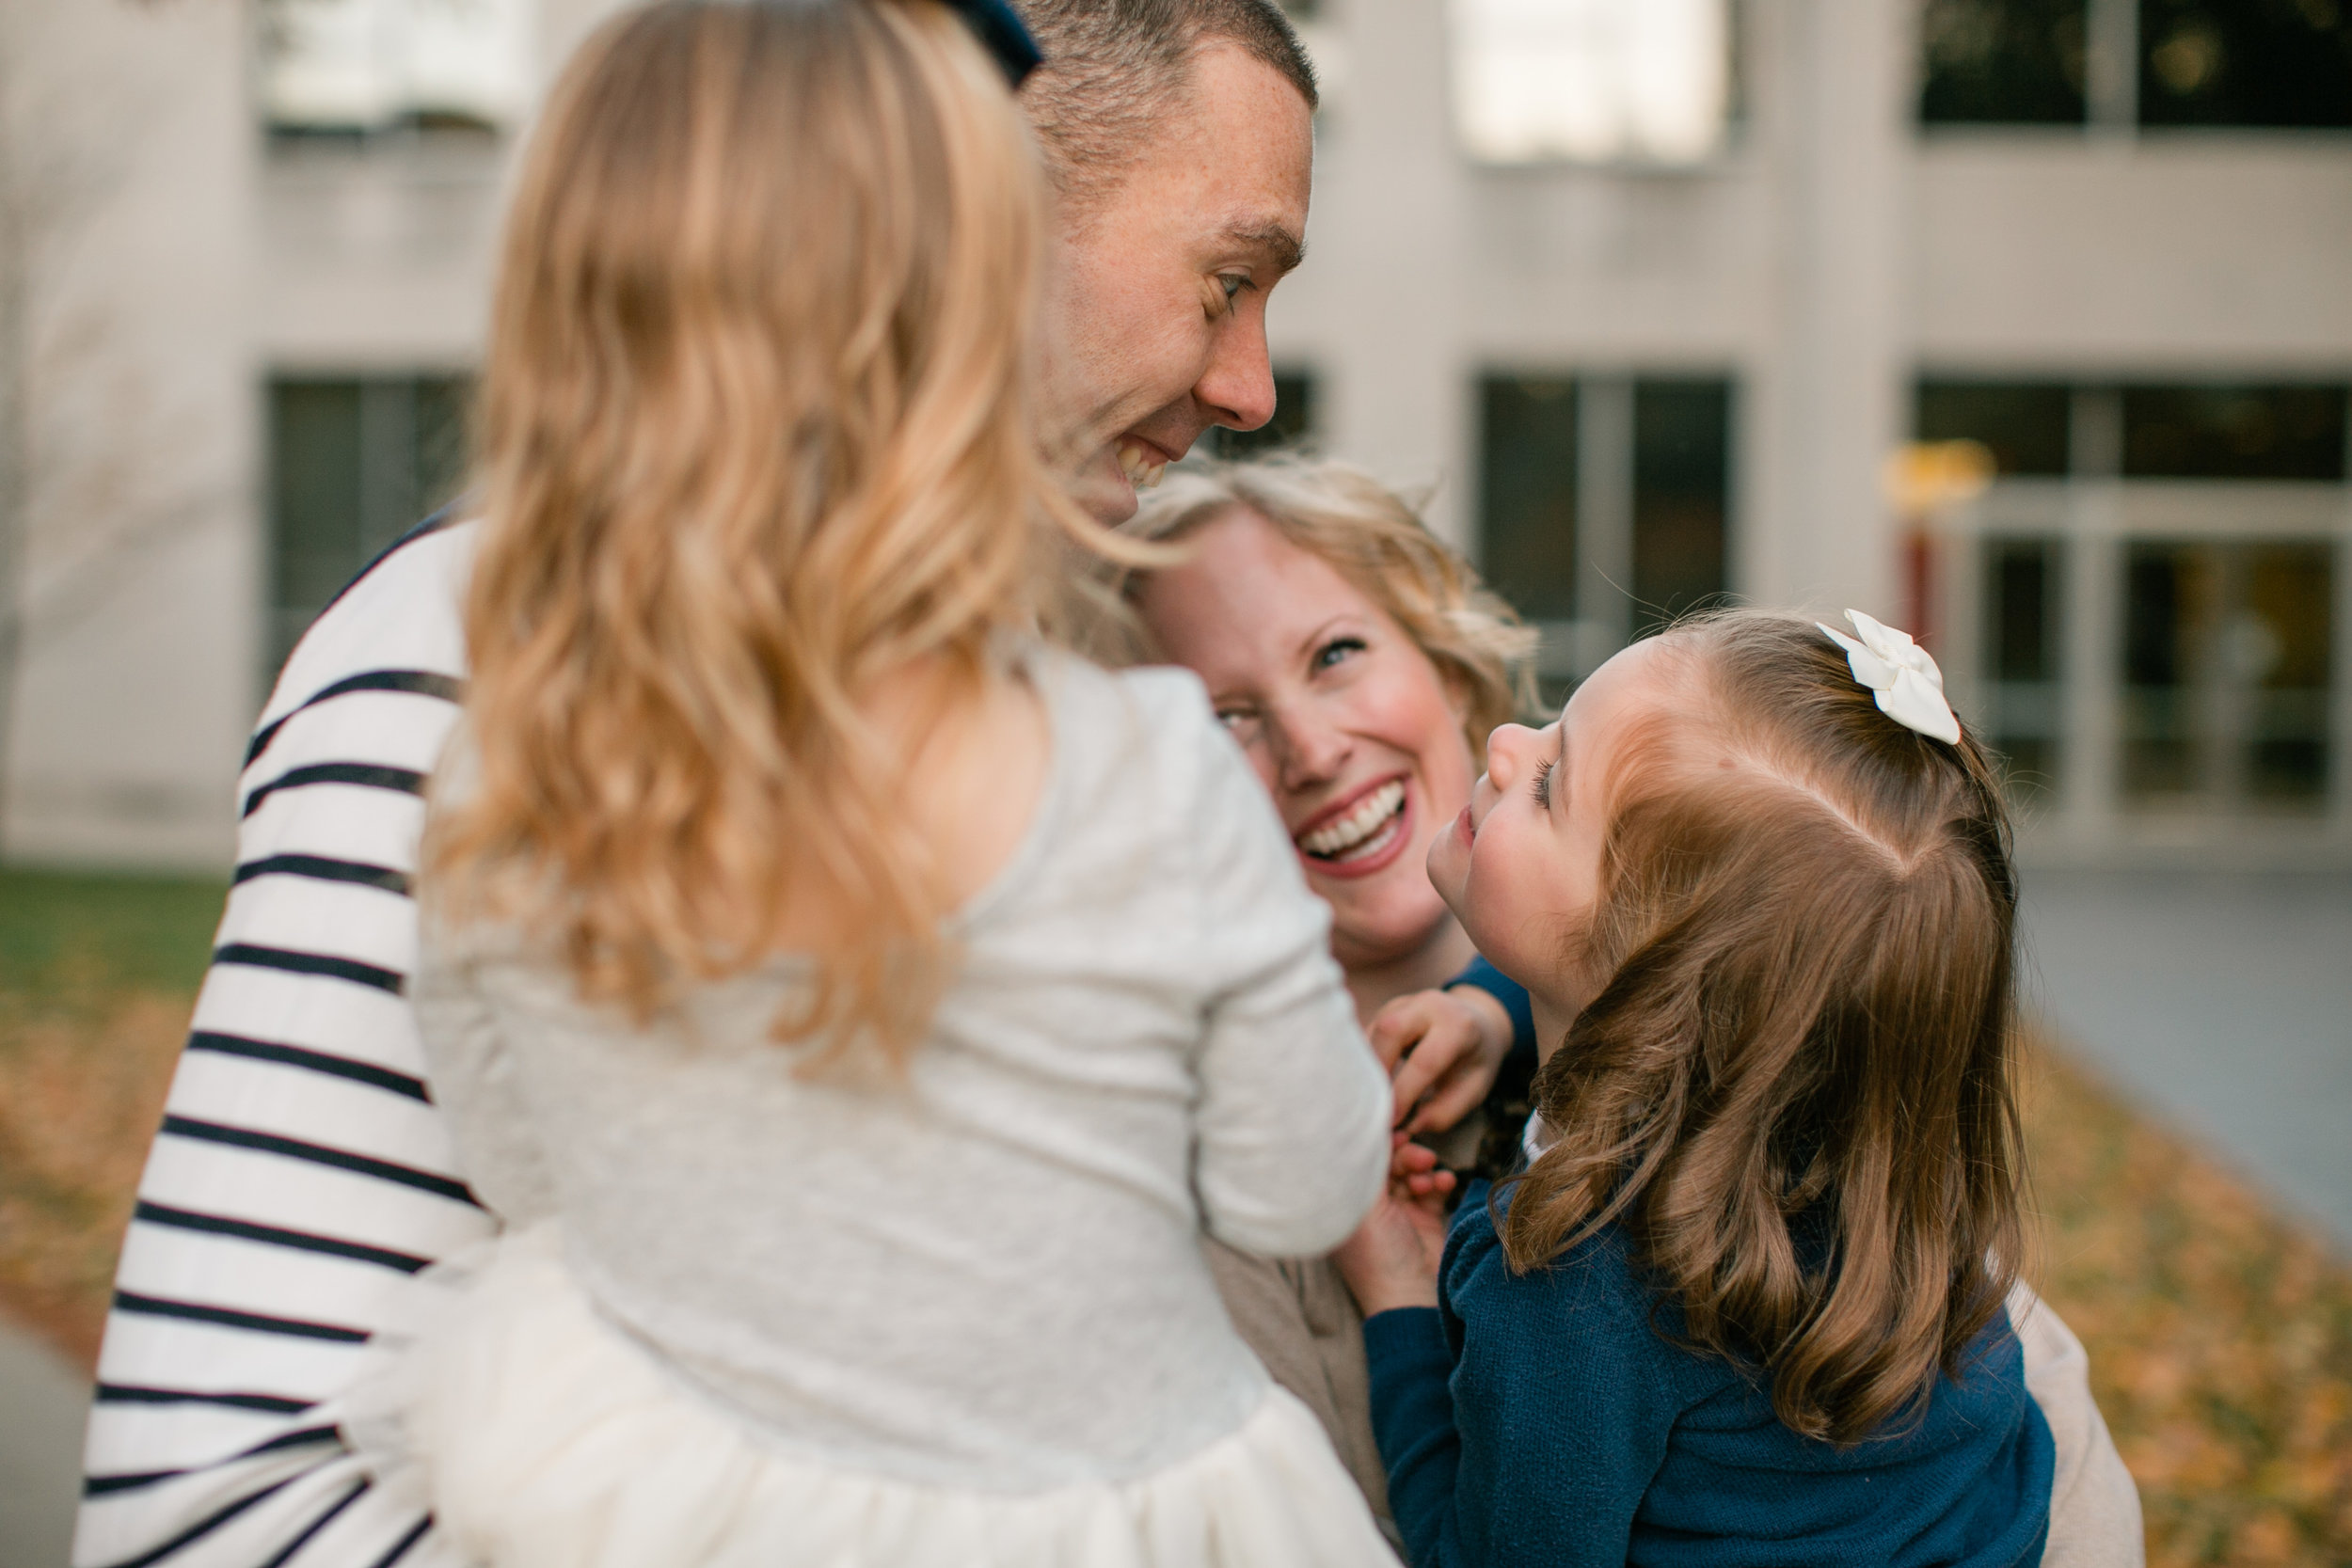 des moines family pictures amelia renee photography